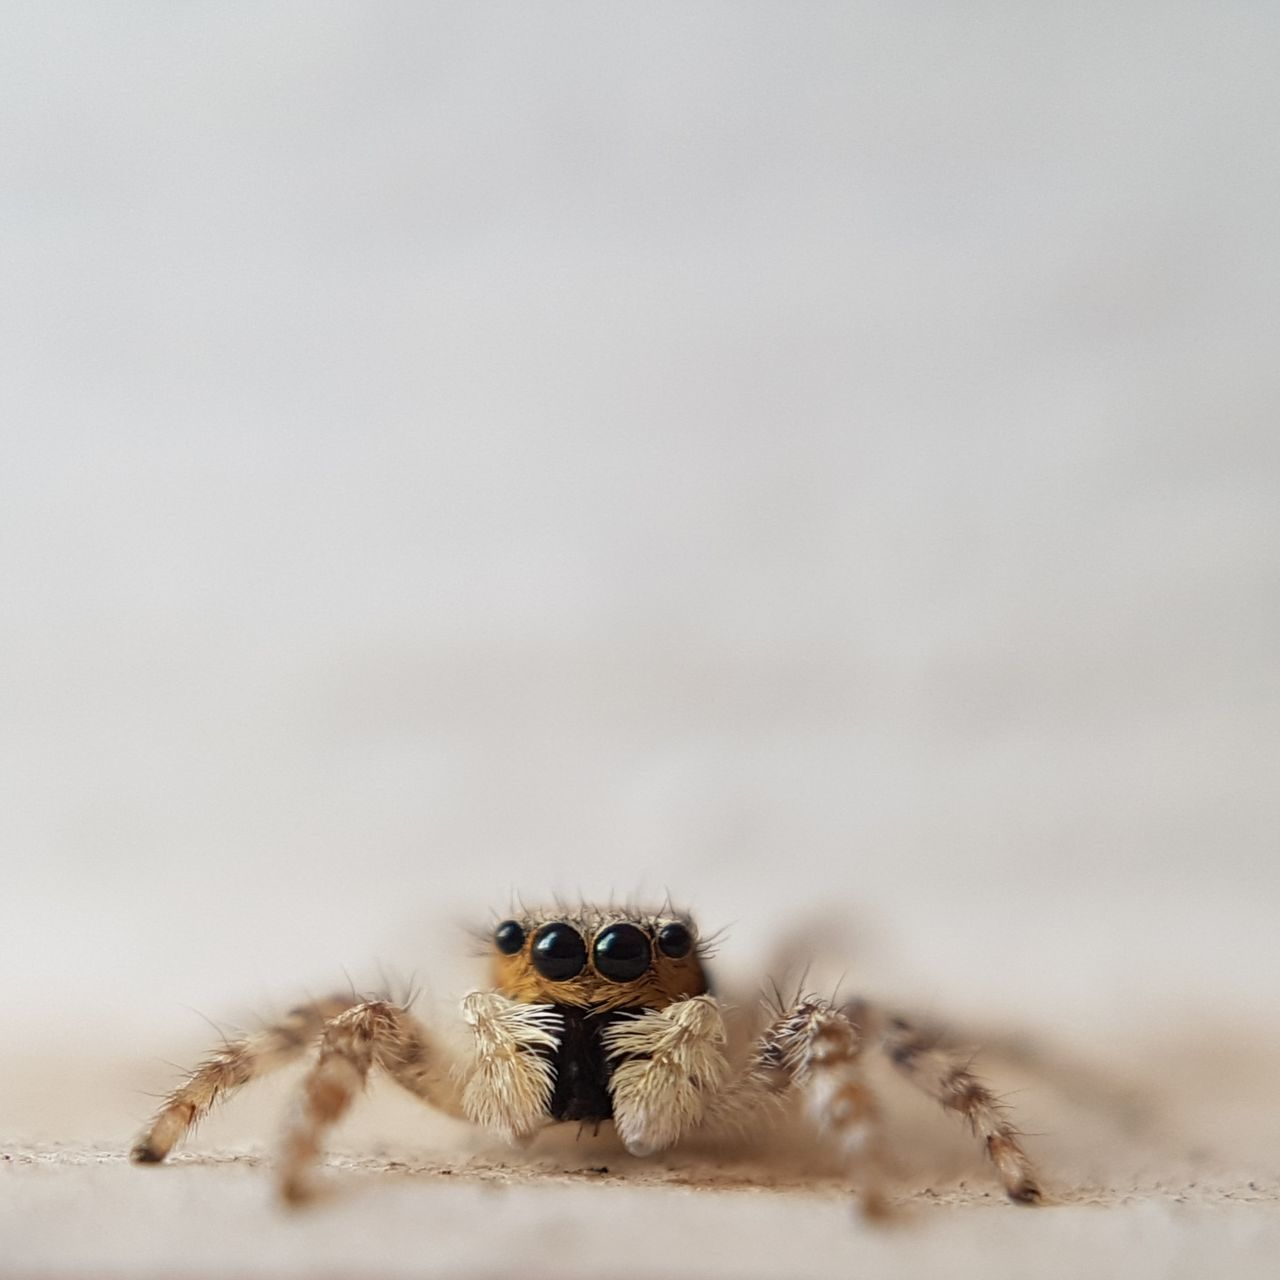 animal themes, one animal, spider, animal wildlife, animals in the wild, looking at camera, no people, close-up, portrait, day, nature, outdoors, mammal